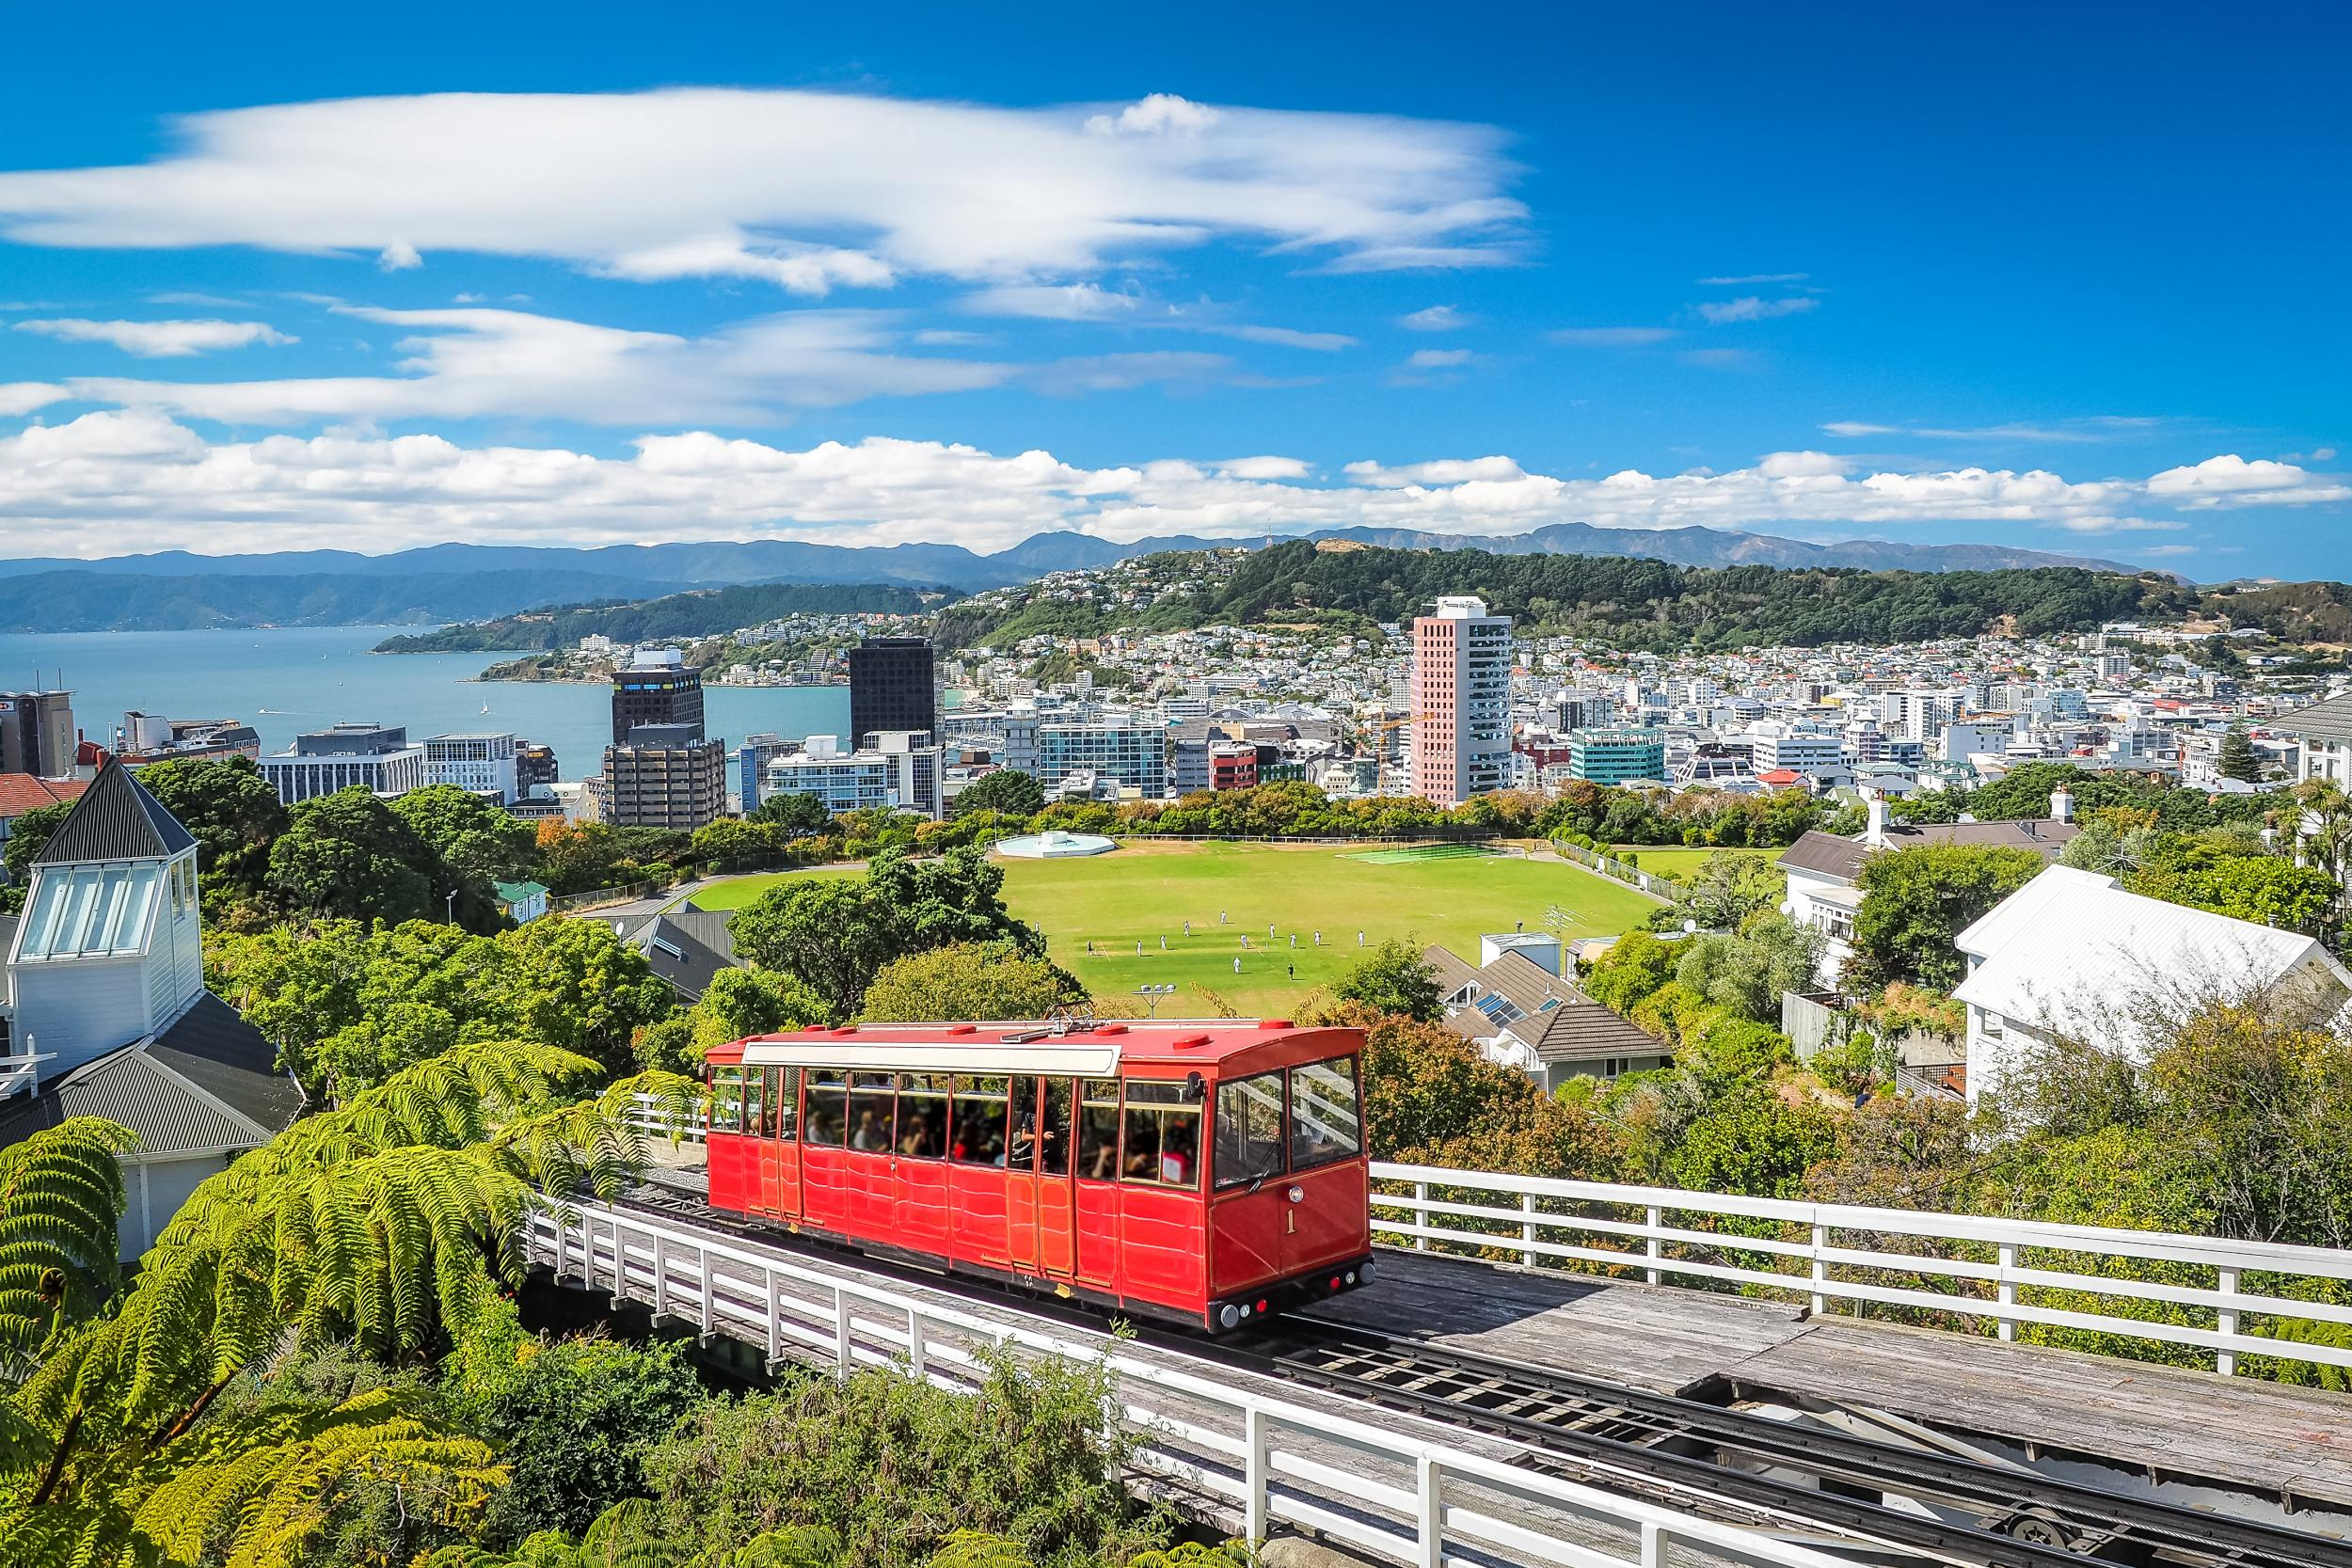 Tourists charged almost £500 for five-minute taxi journey in New Zealand